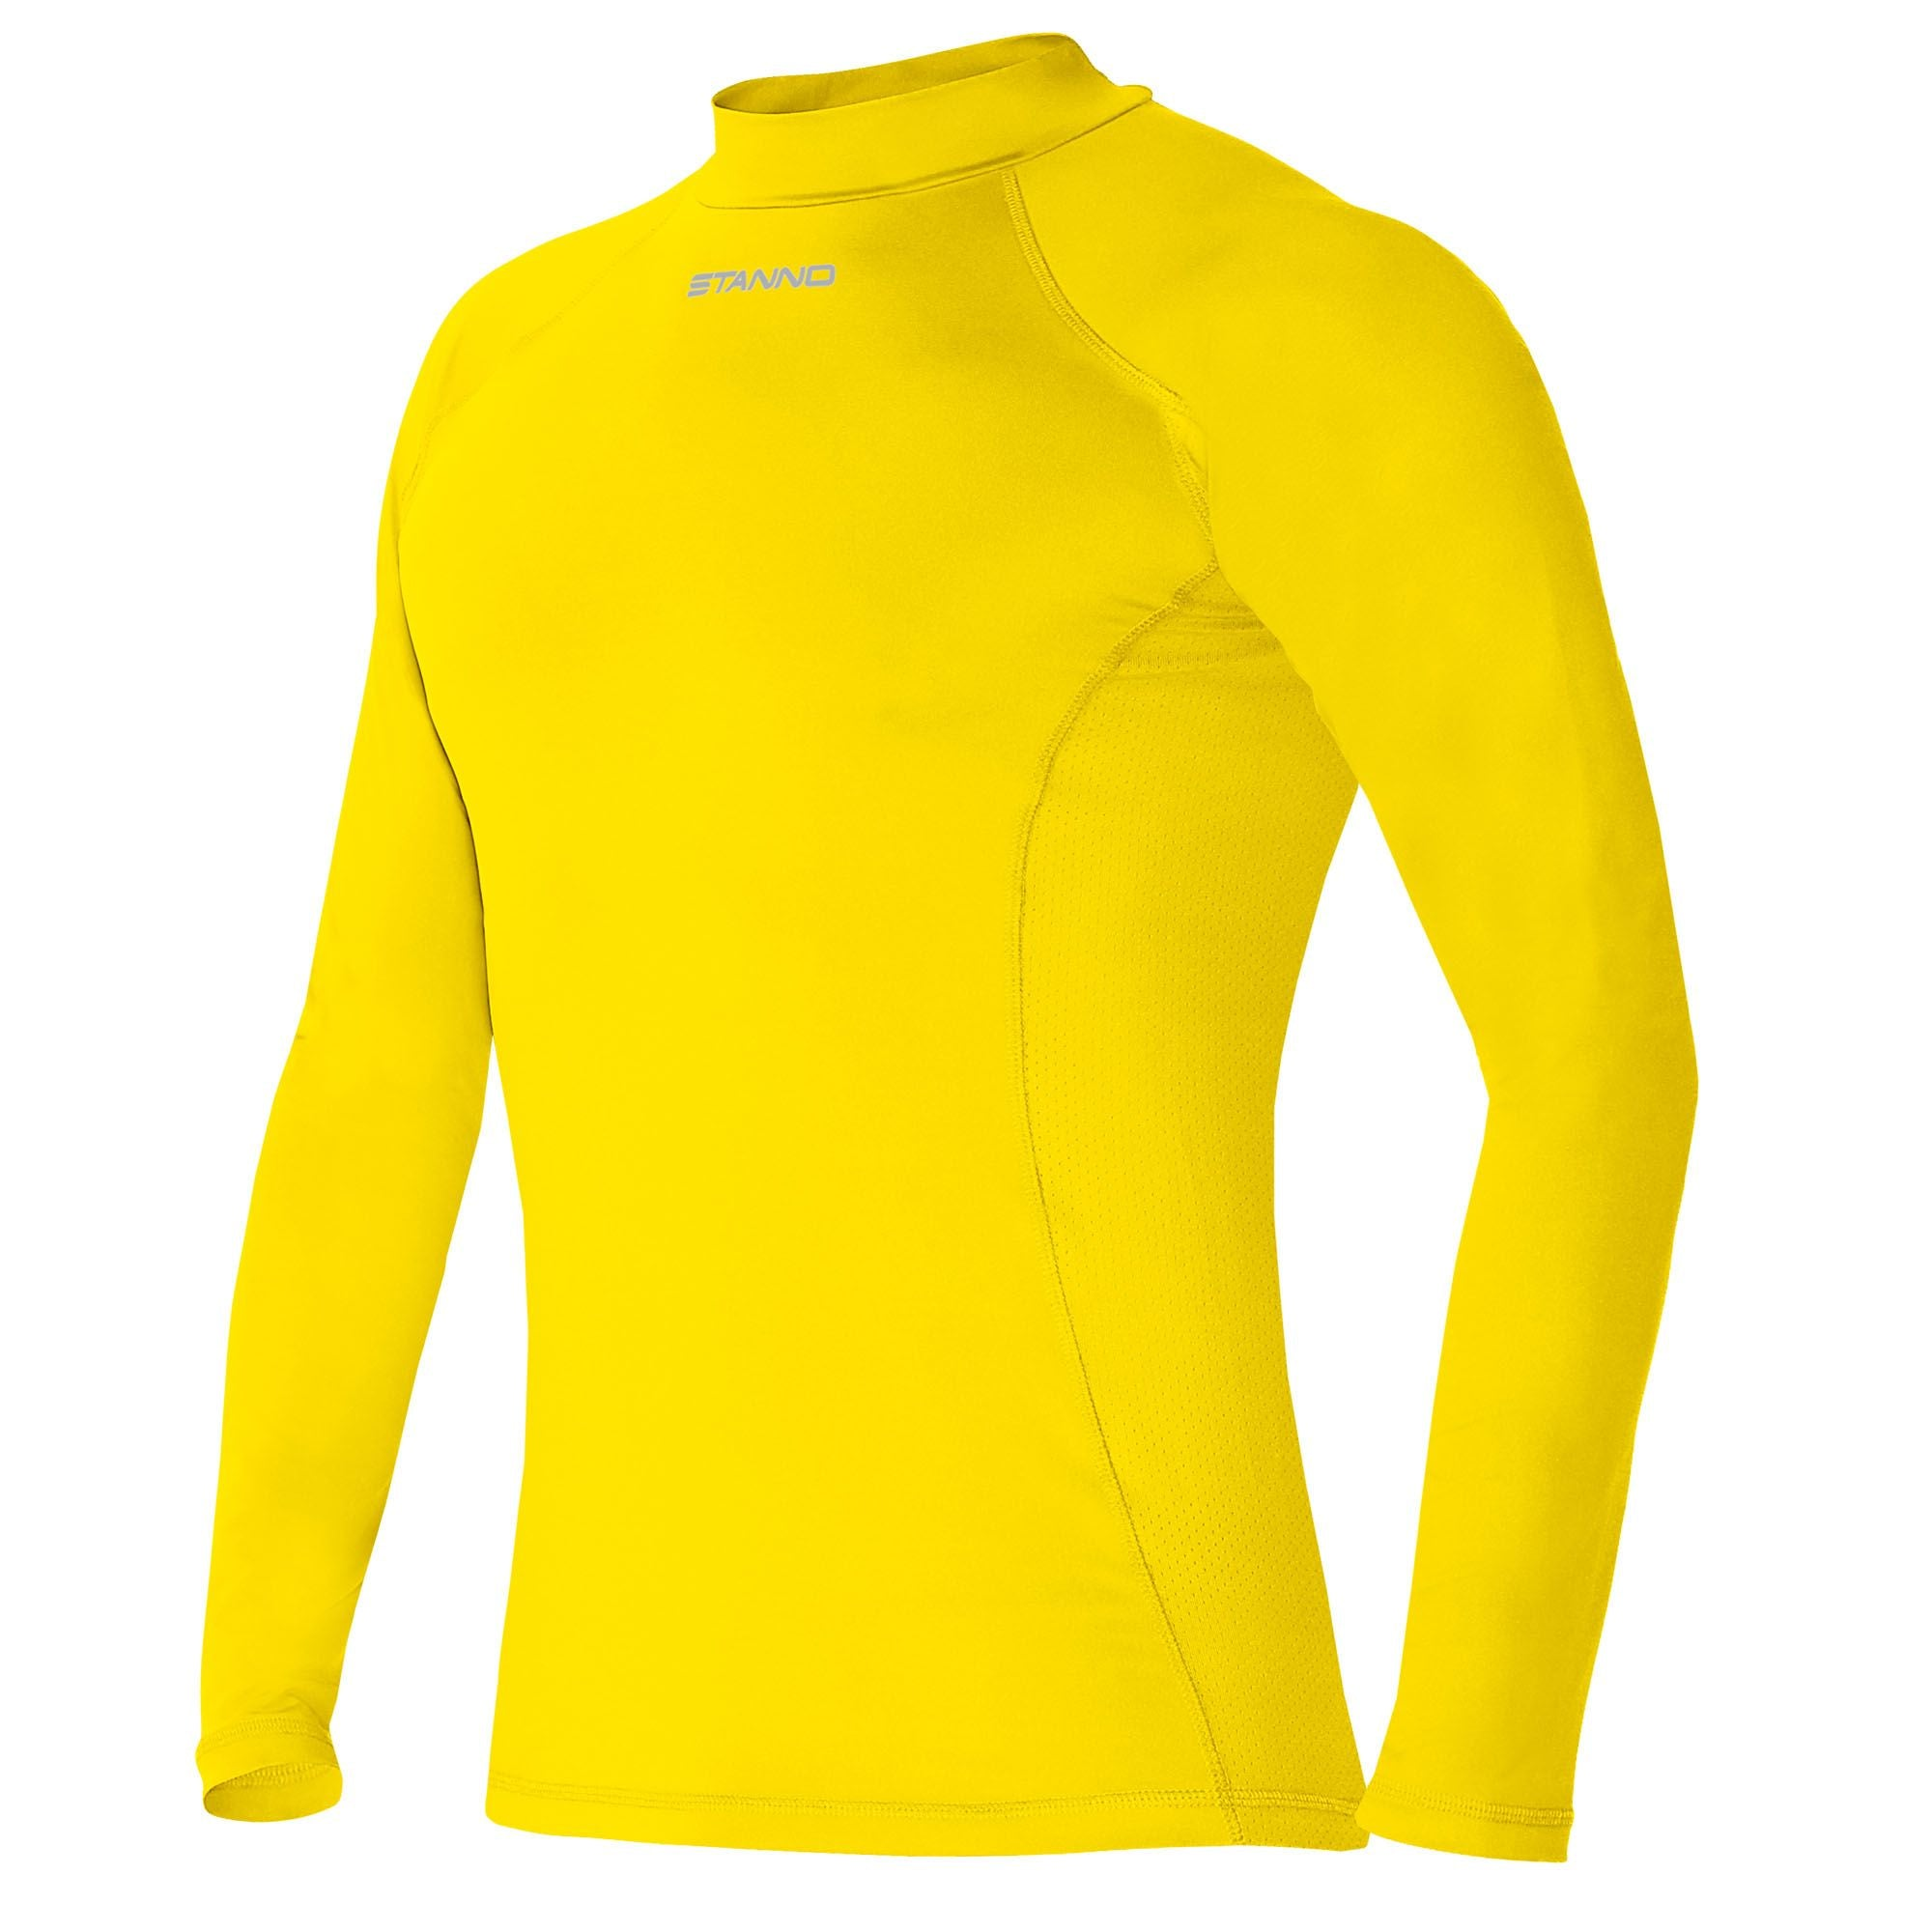 Stanno Pro Base Layer - Yellow